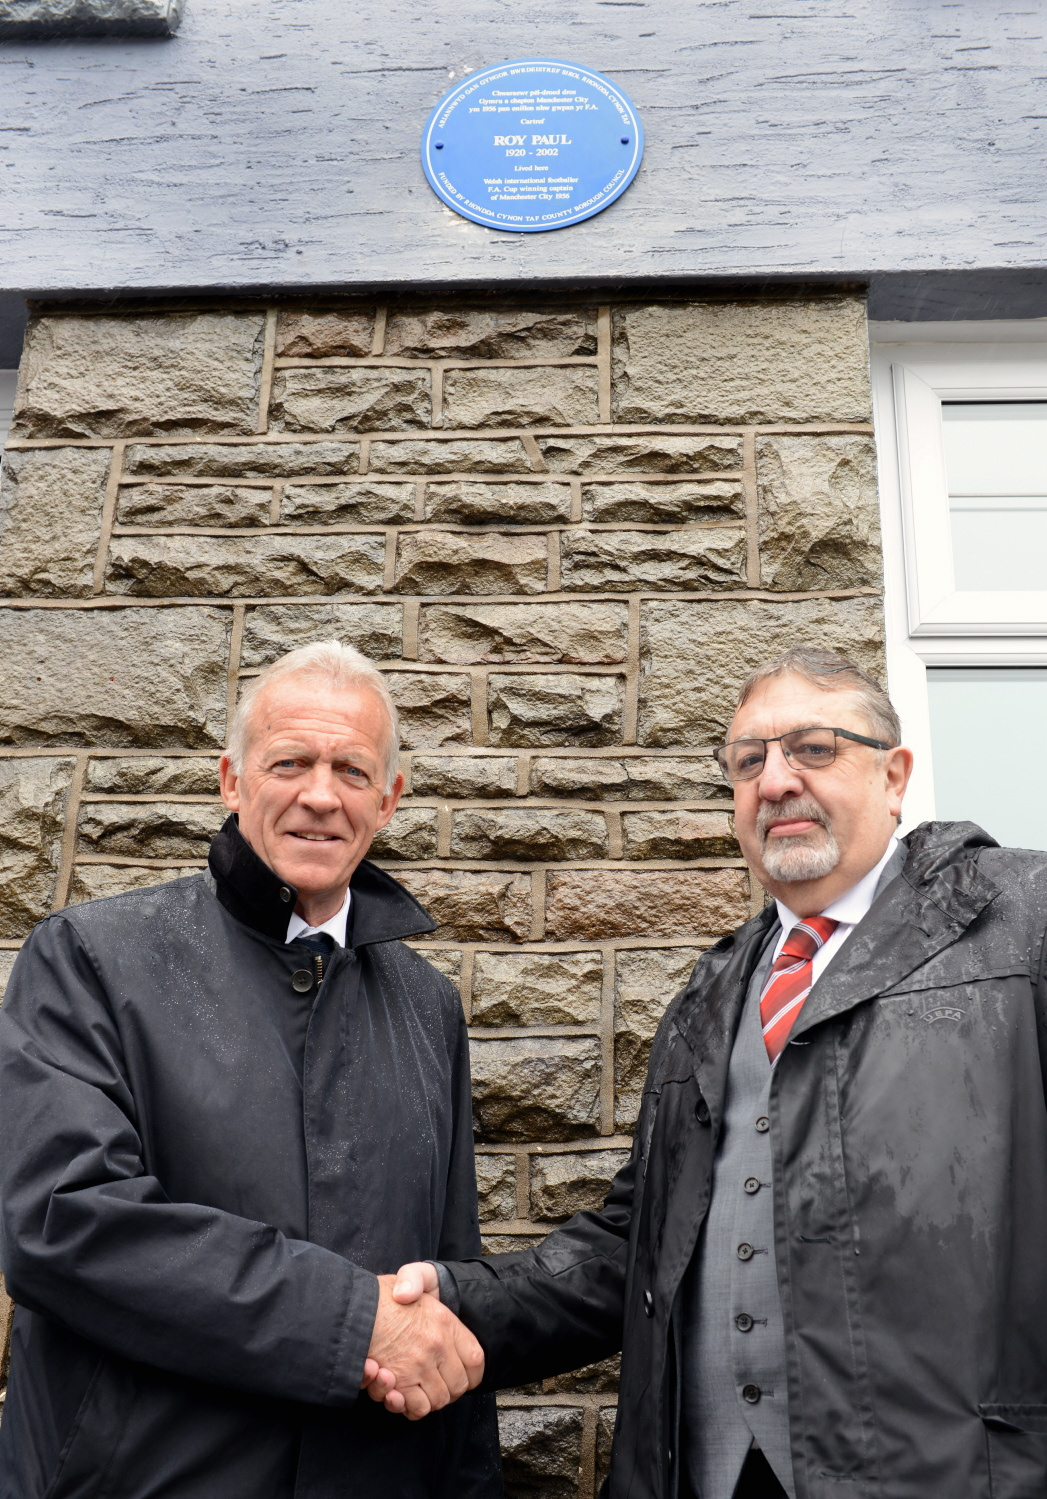 Alan Curtis and Kieran O'Connor at the unveiling of the Blue Plaque.